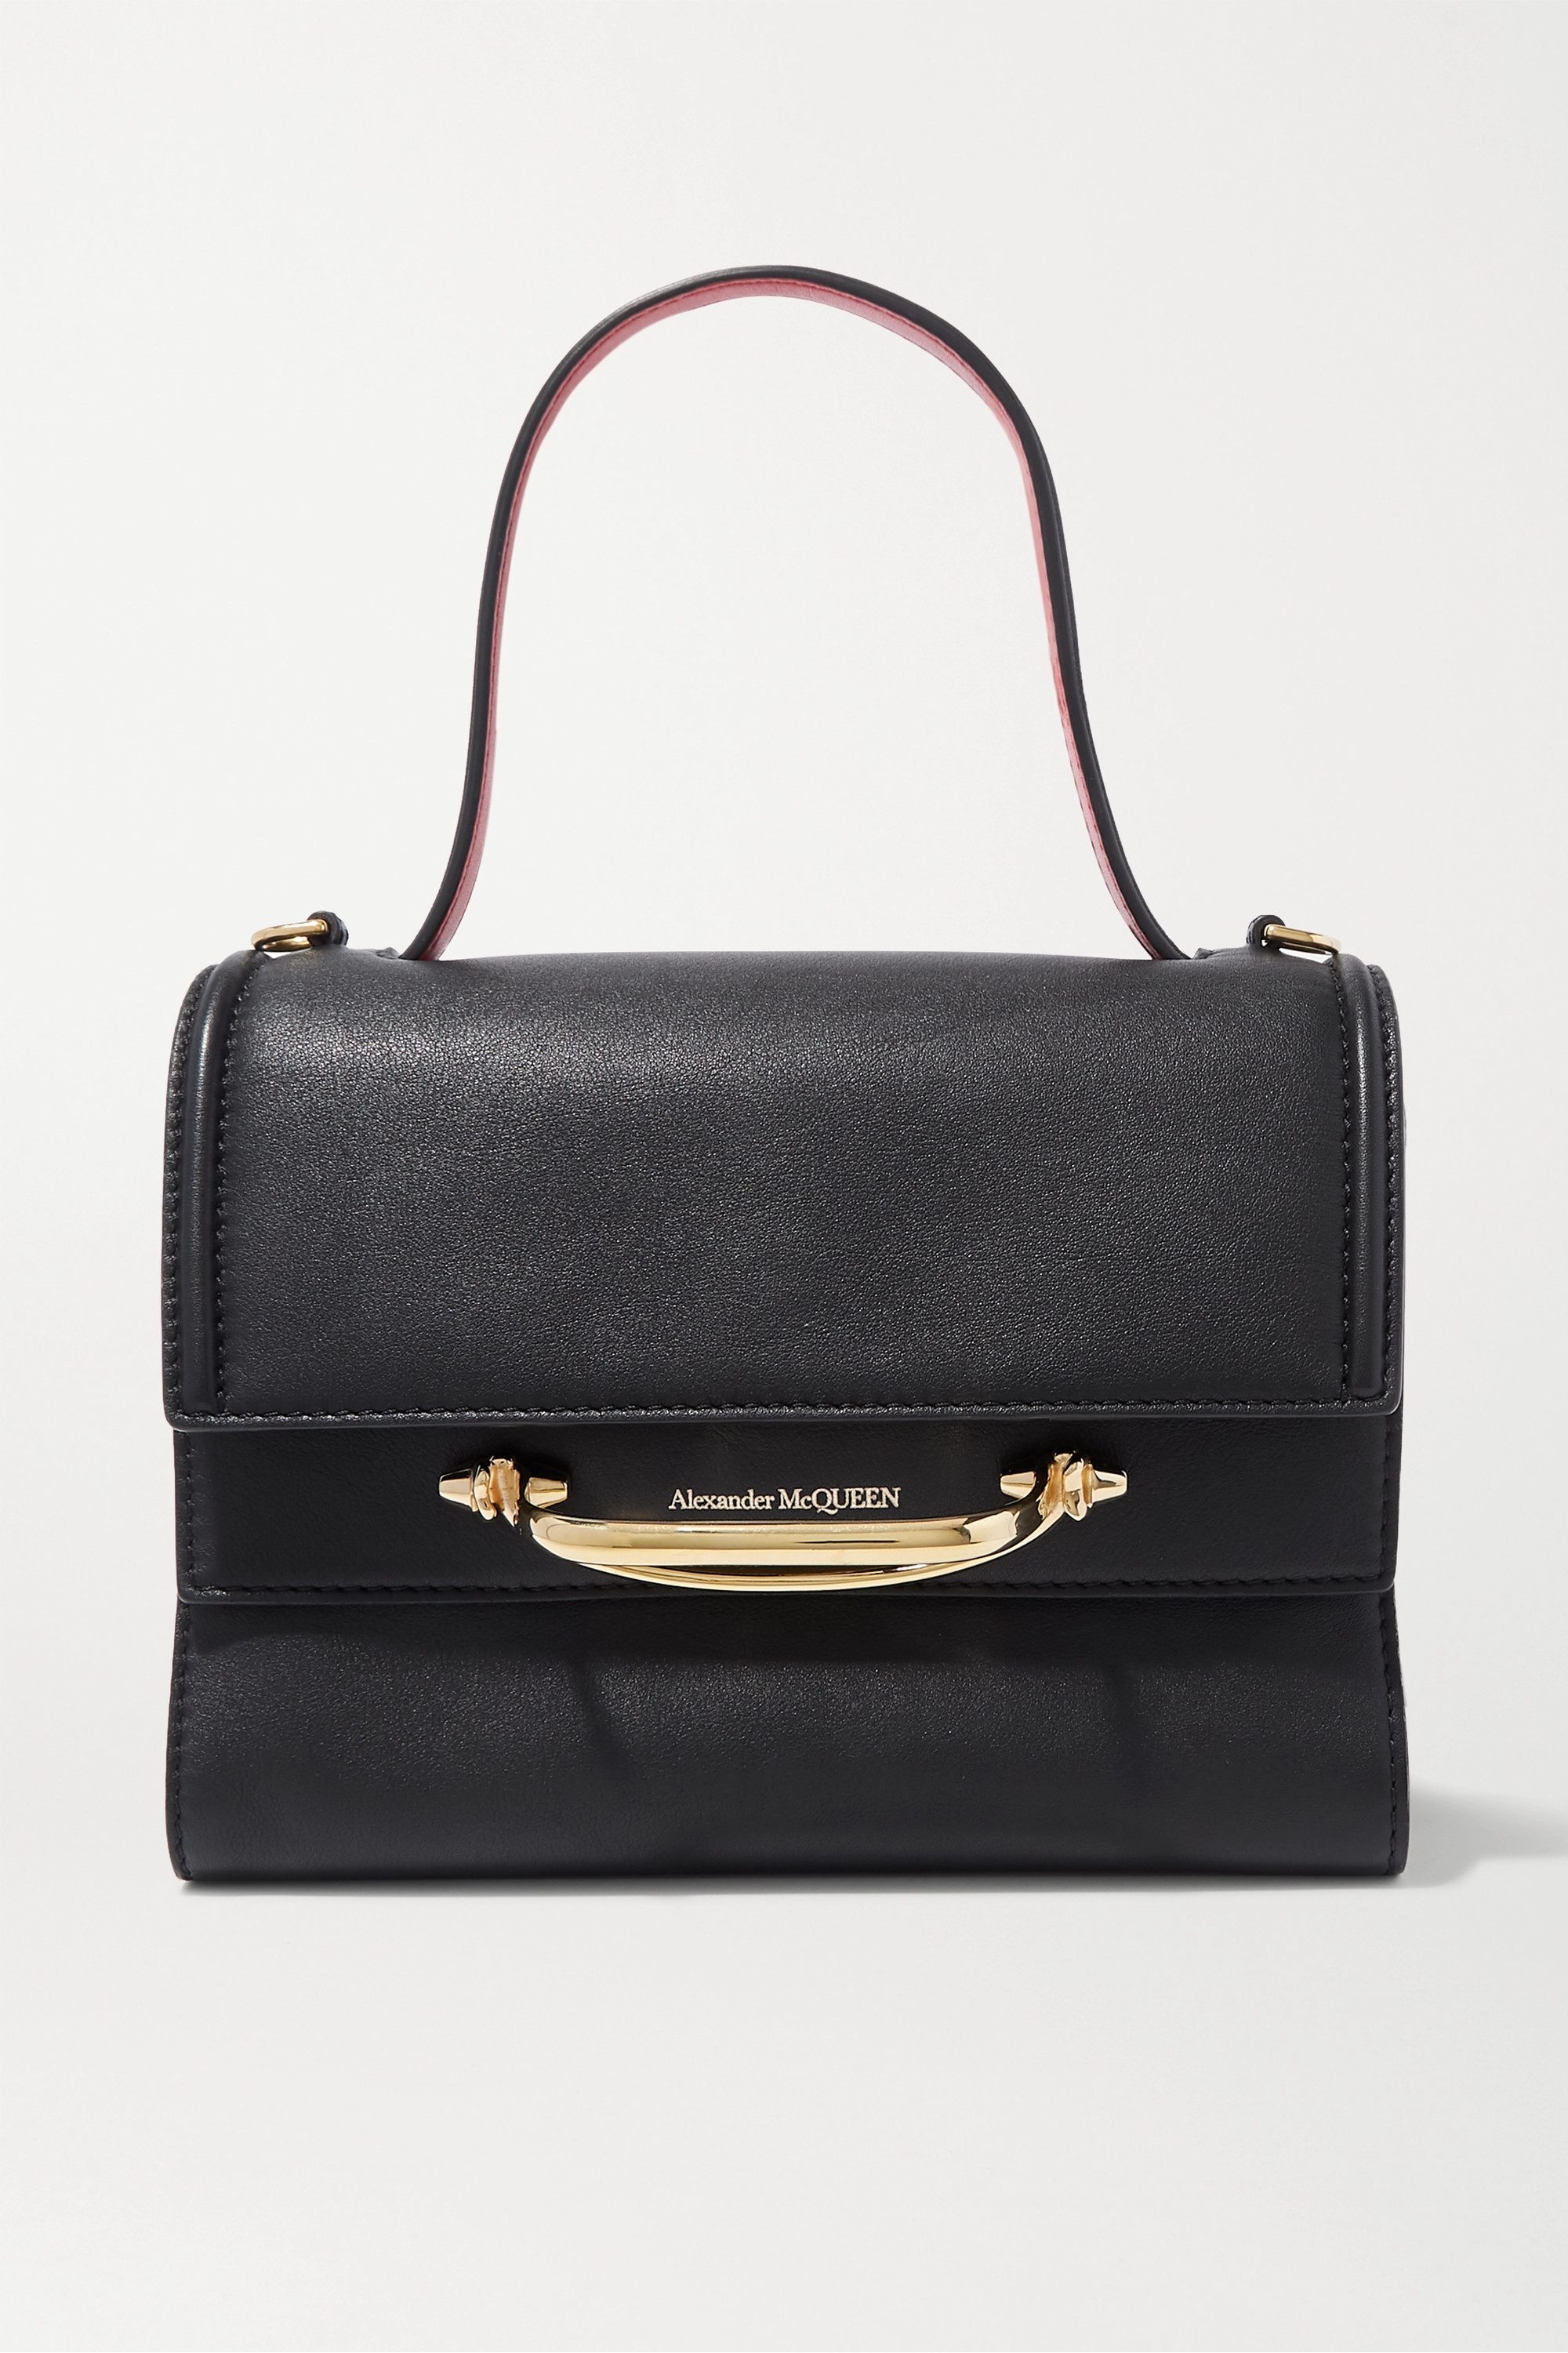 ALEXANDER MCQUEEN The Story small two-tone leather tote